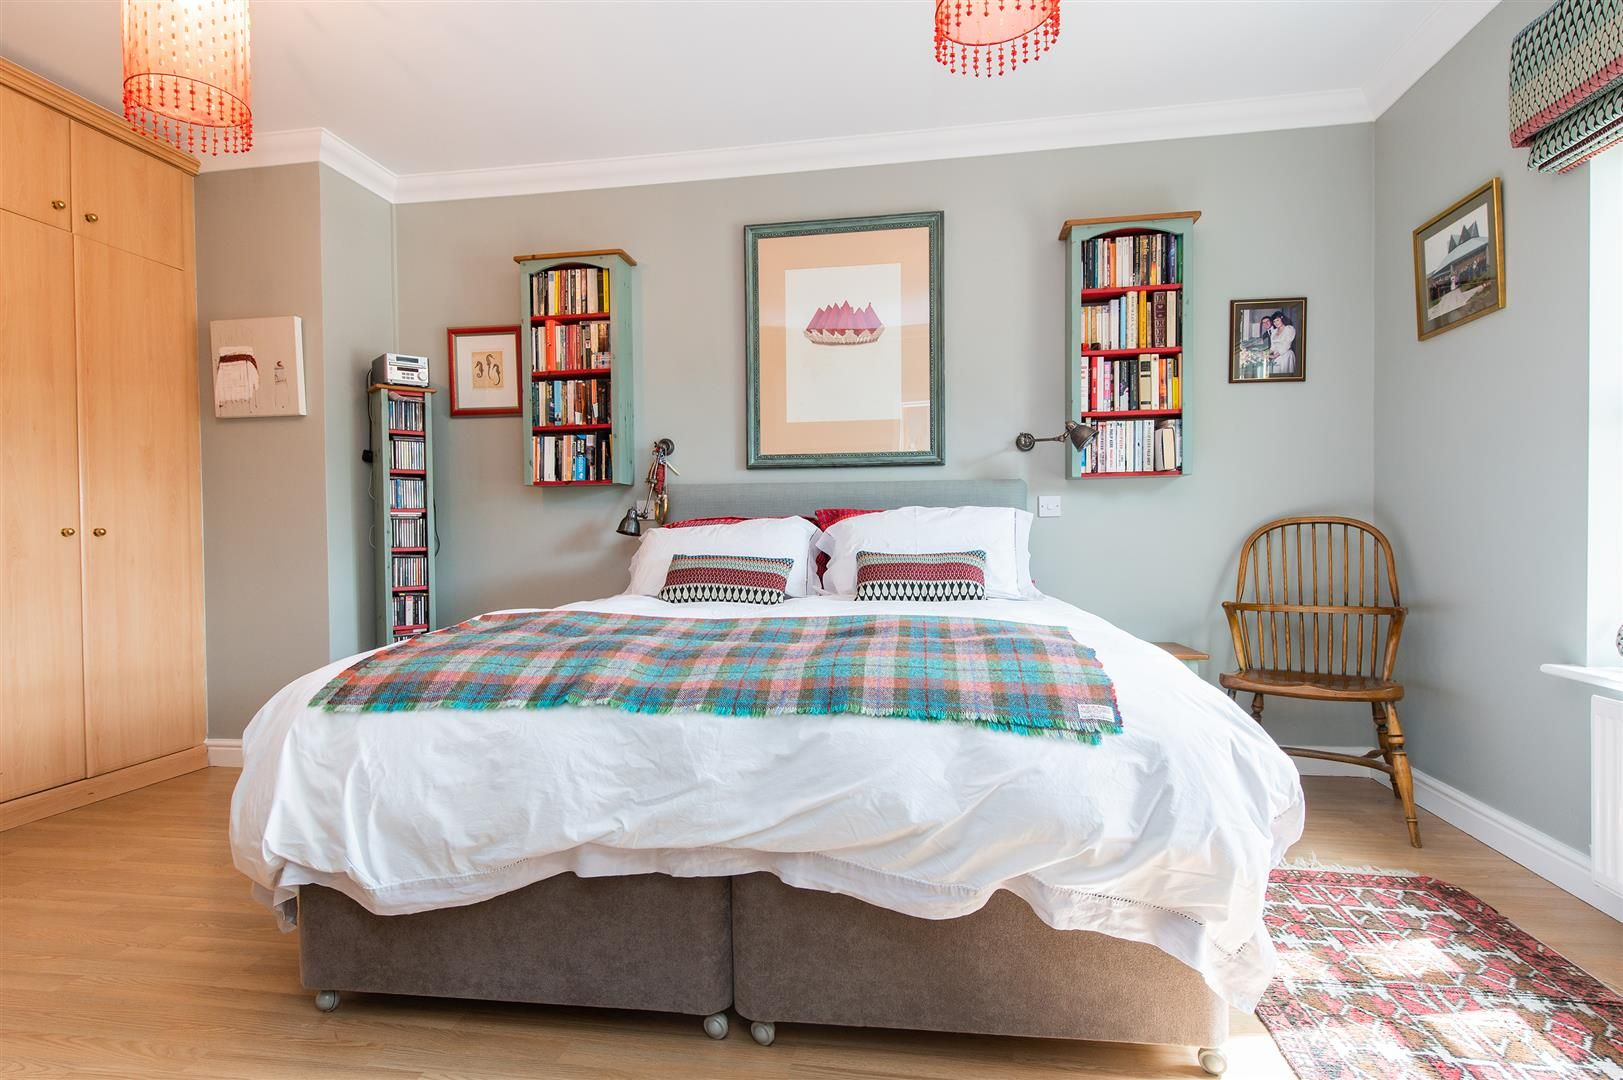 5 bed house for sale in Hagley 24